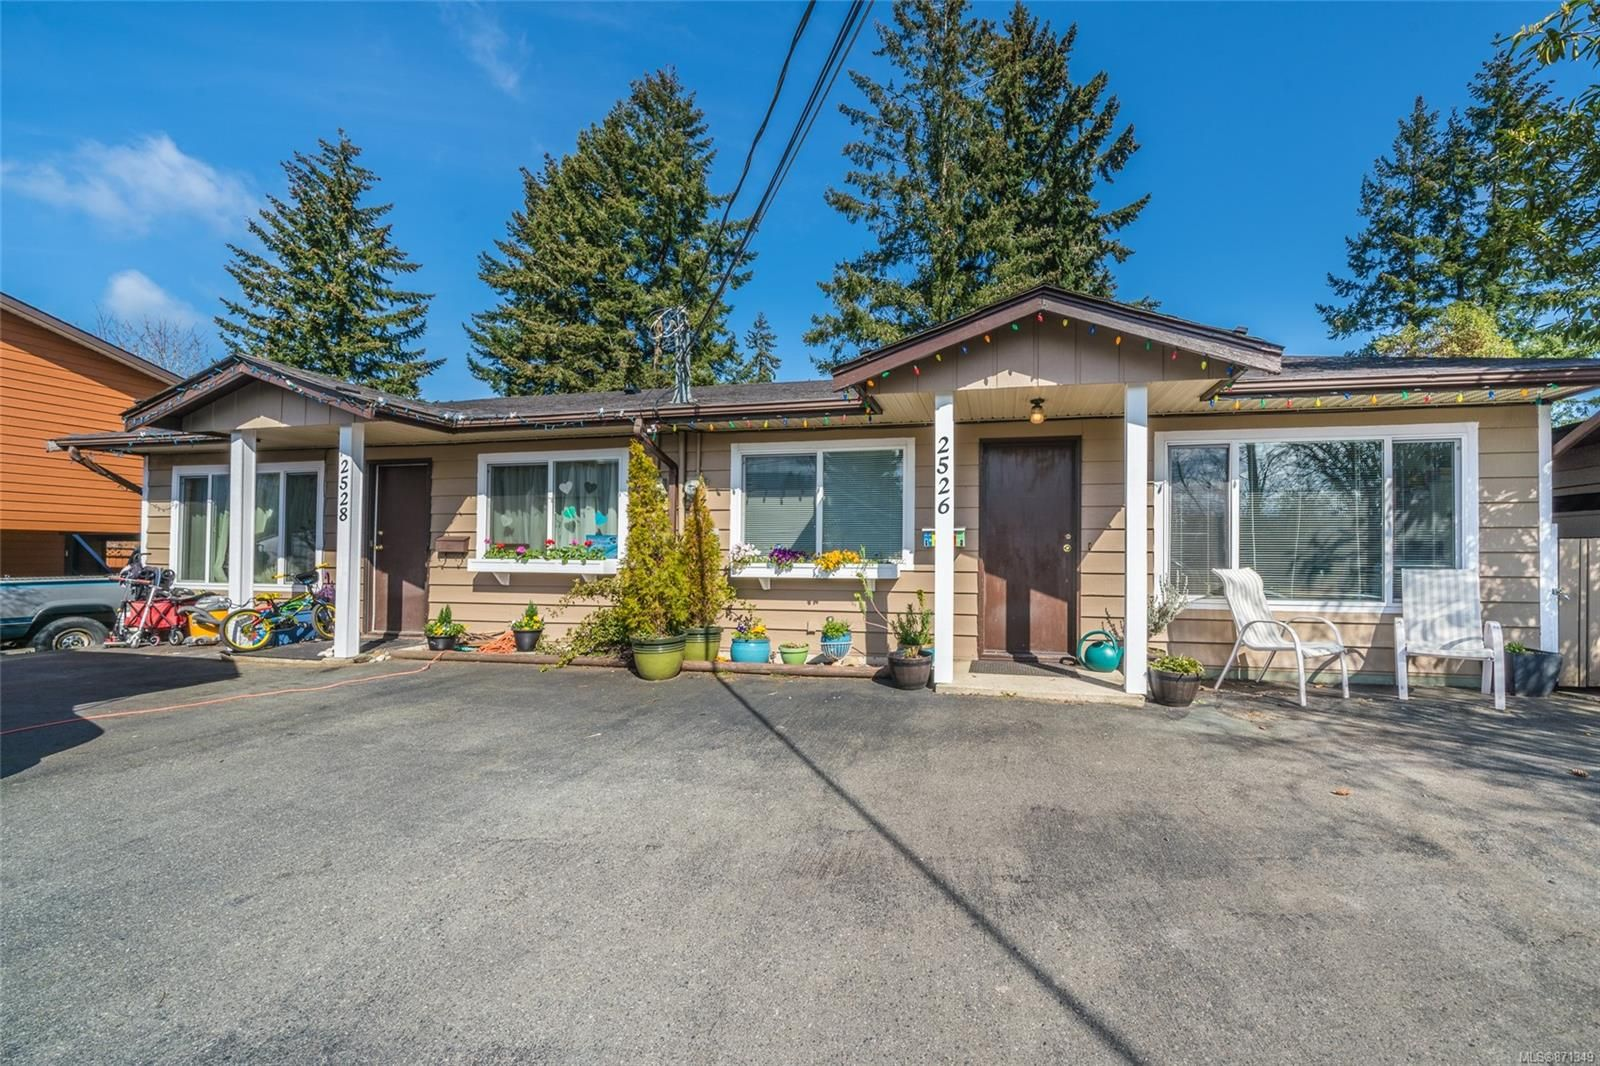 Main Photo: 2526 & 2528 Rosstown Rd in : Na Diver Lake Full Duplex for sale (Nanaimo)  : MLS®# 871349